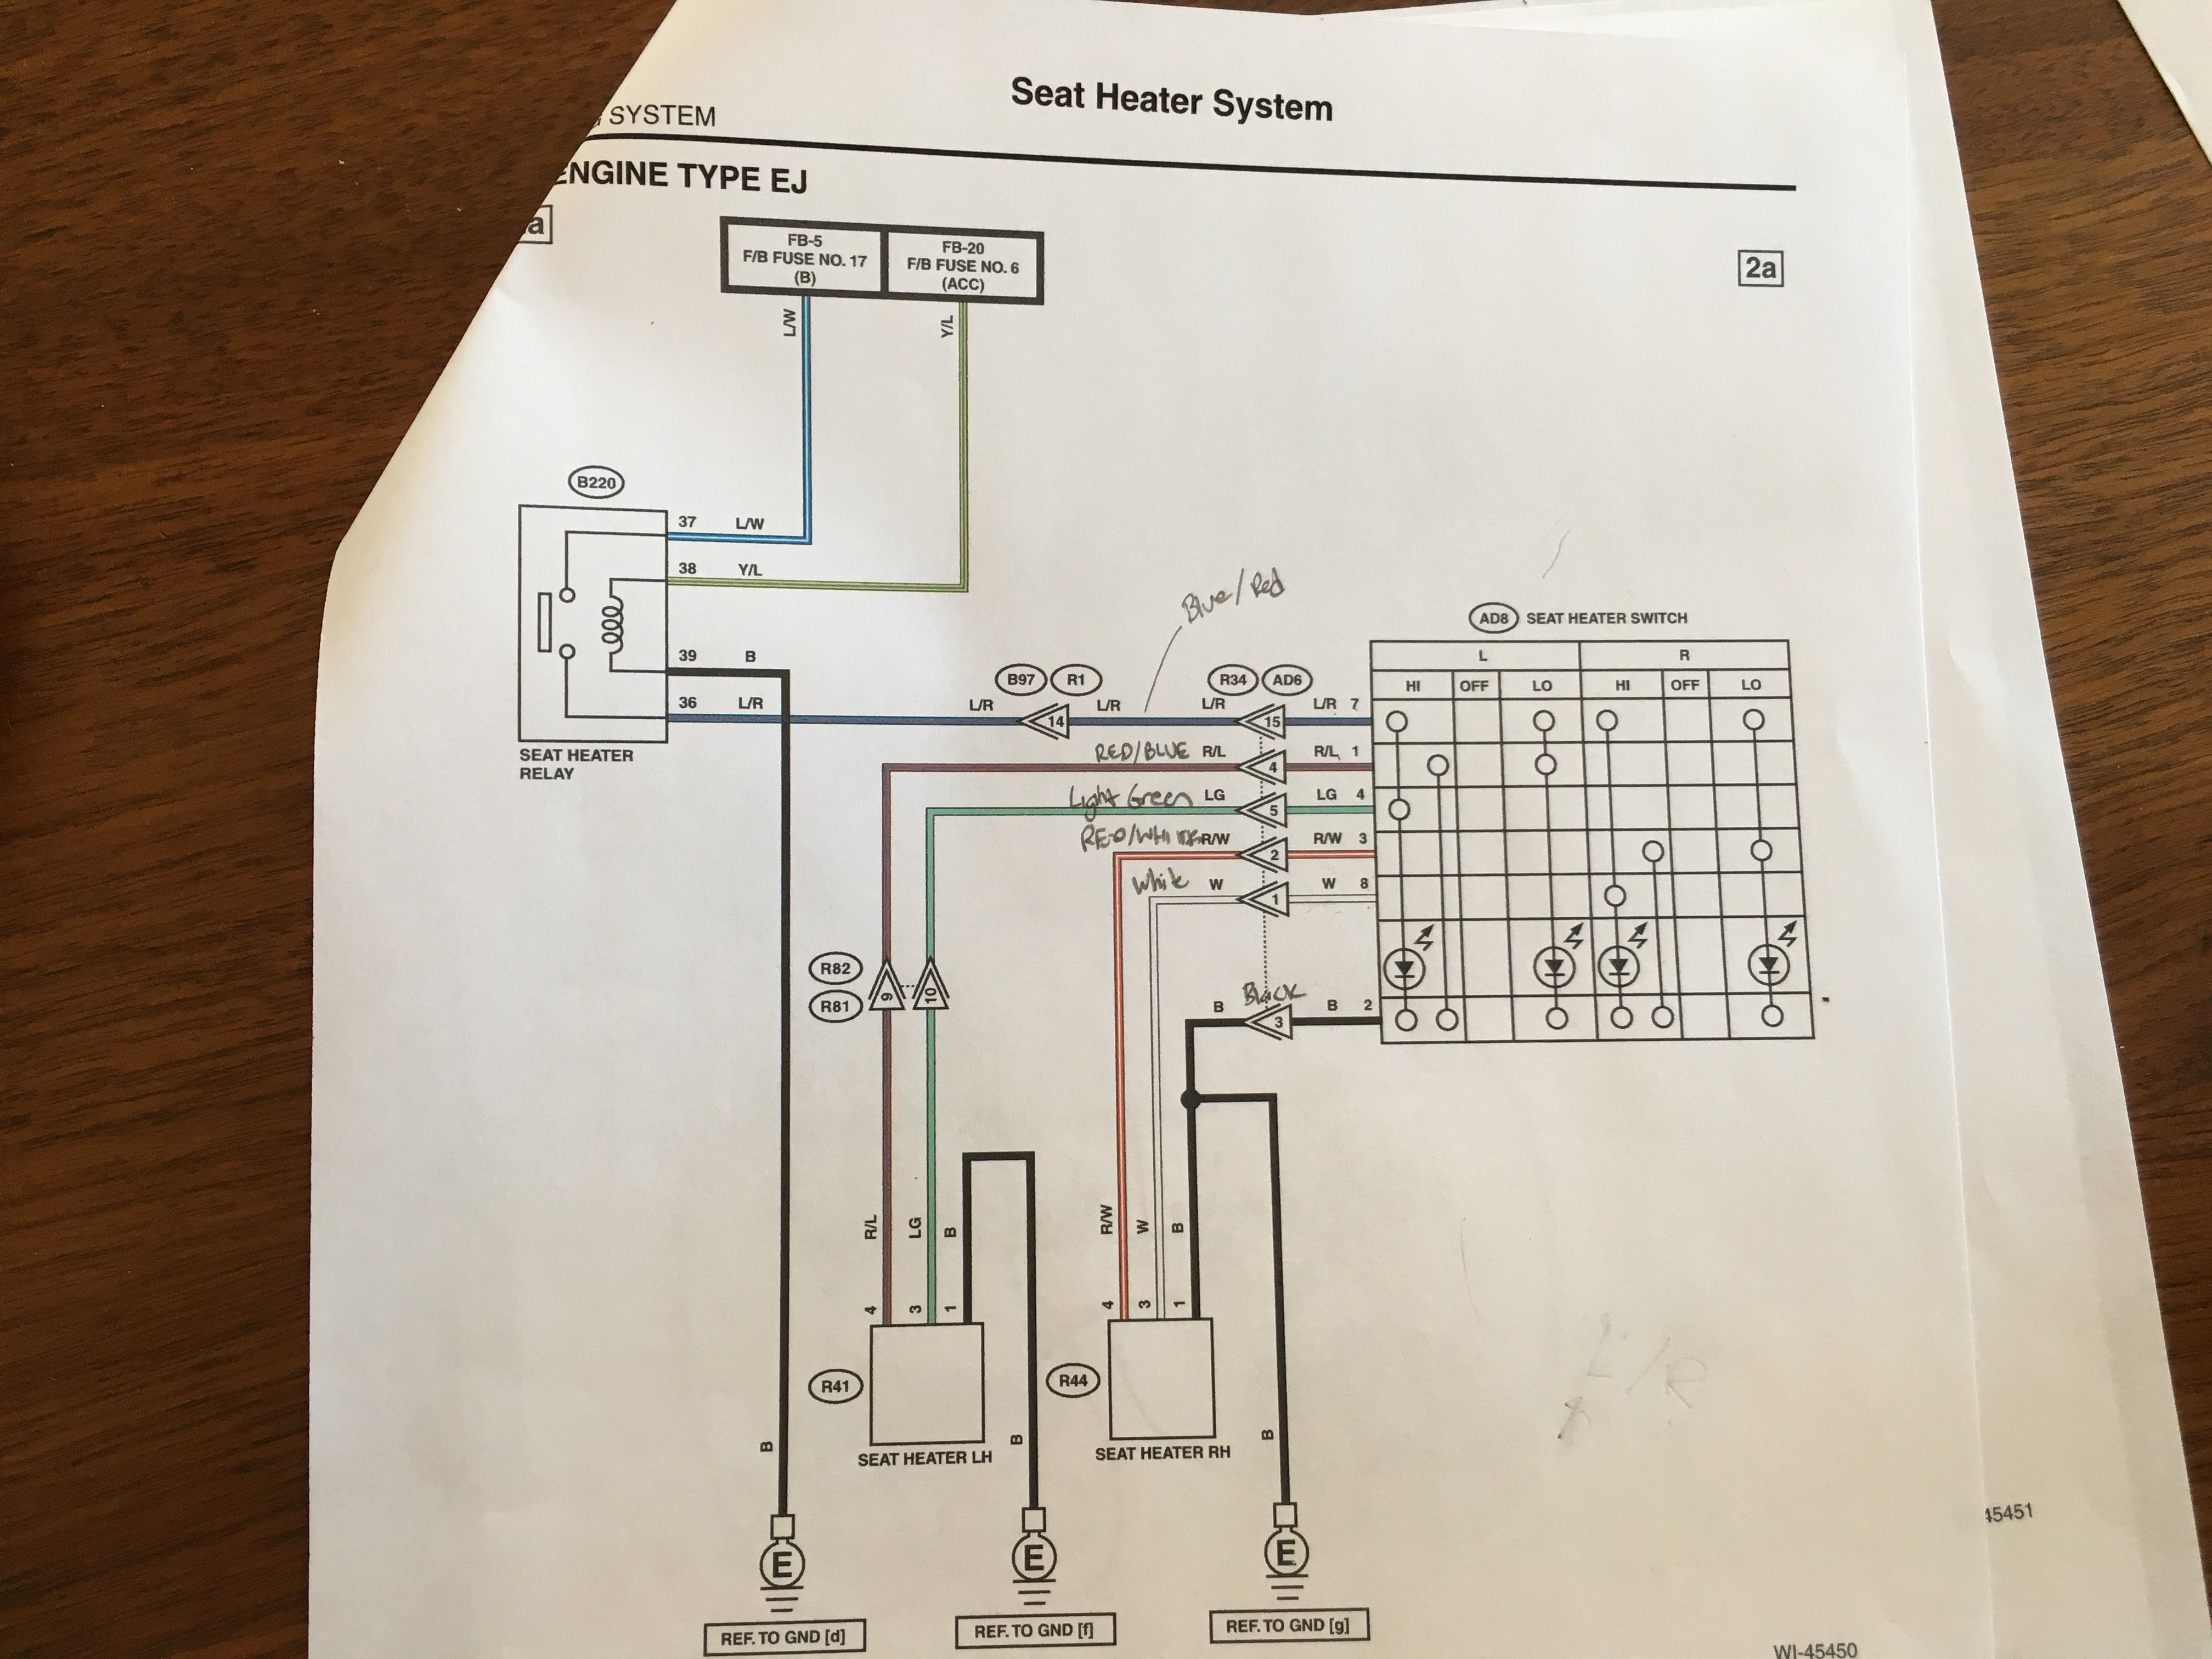 mystery wires from 2015 sti seat heater switch nasioc this image has been resized click this bar to view the full image the original image is sized 4032x3024